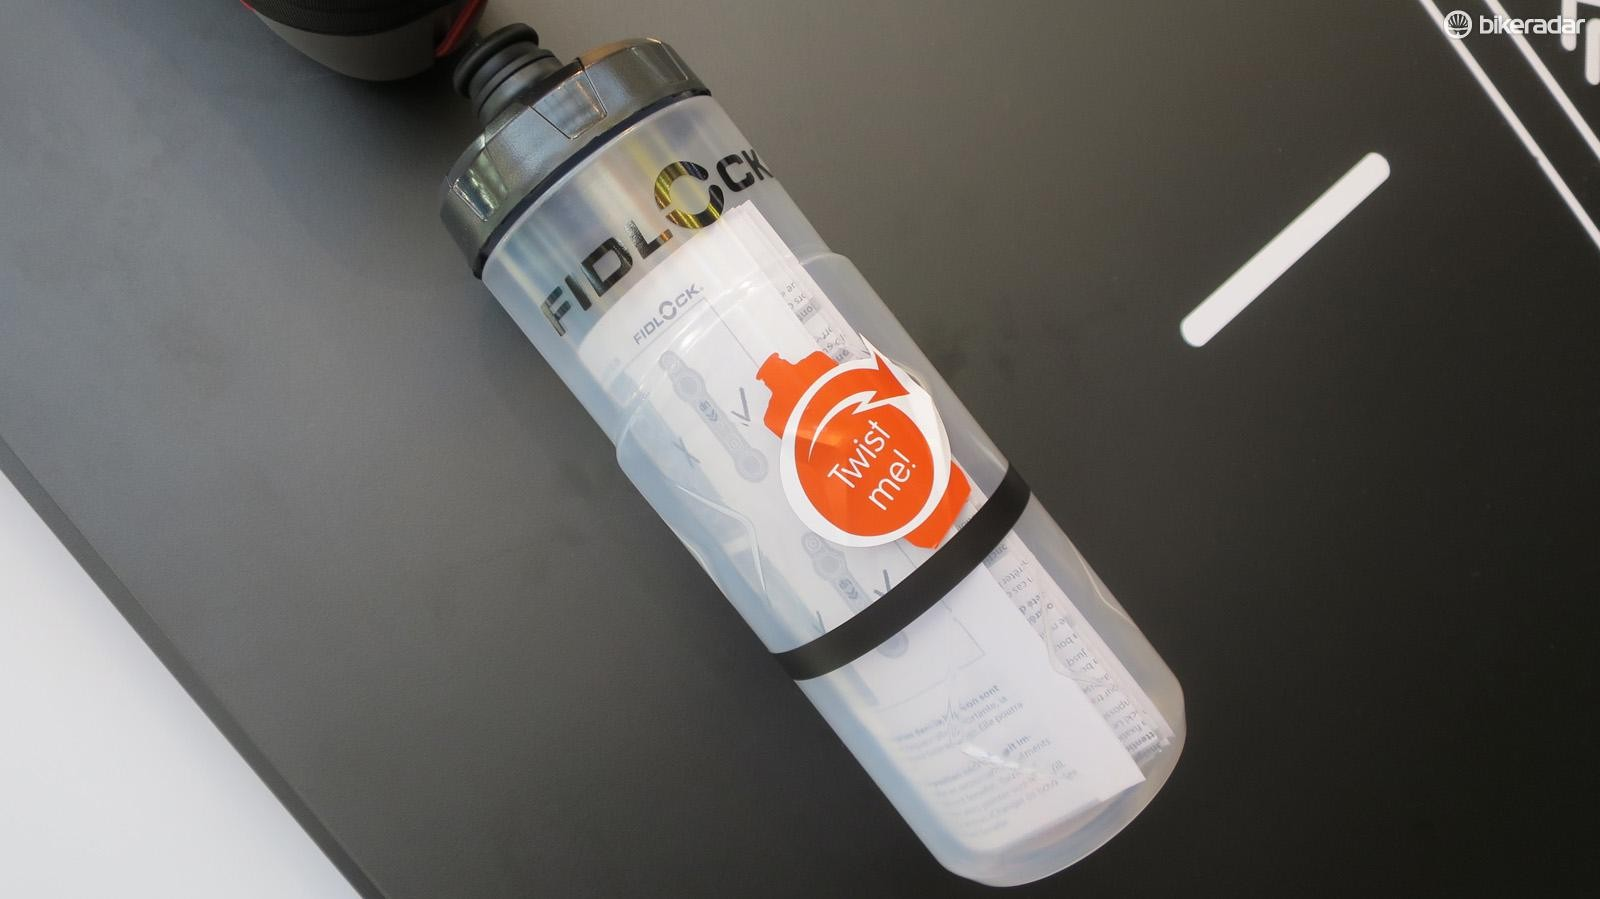 Fidlock's bottle is designed to work with its Twist base unit